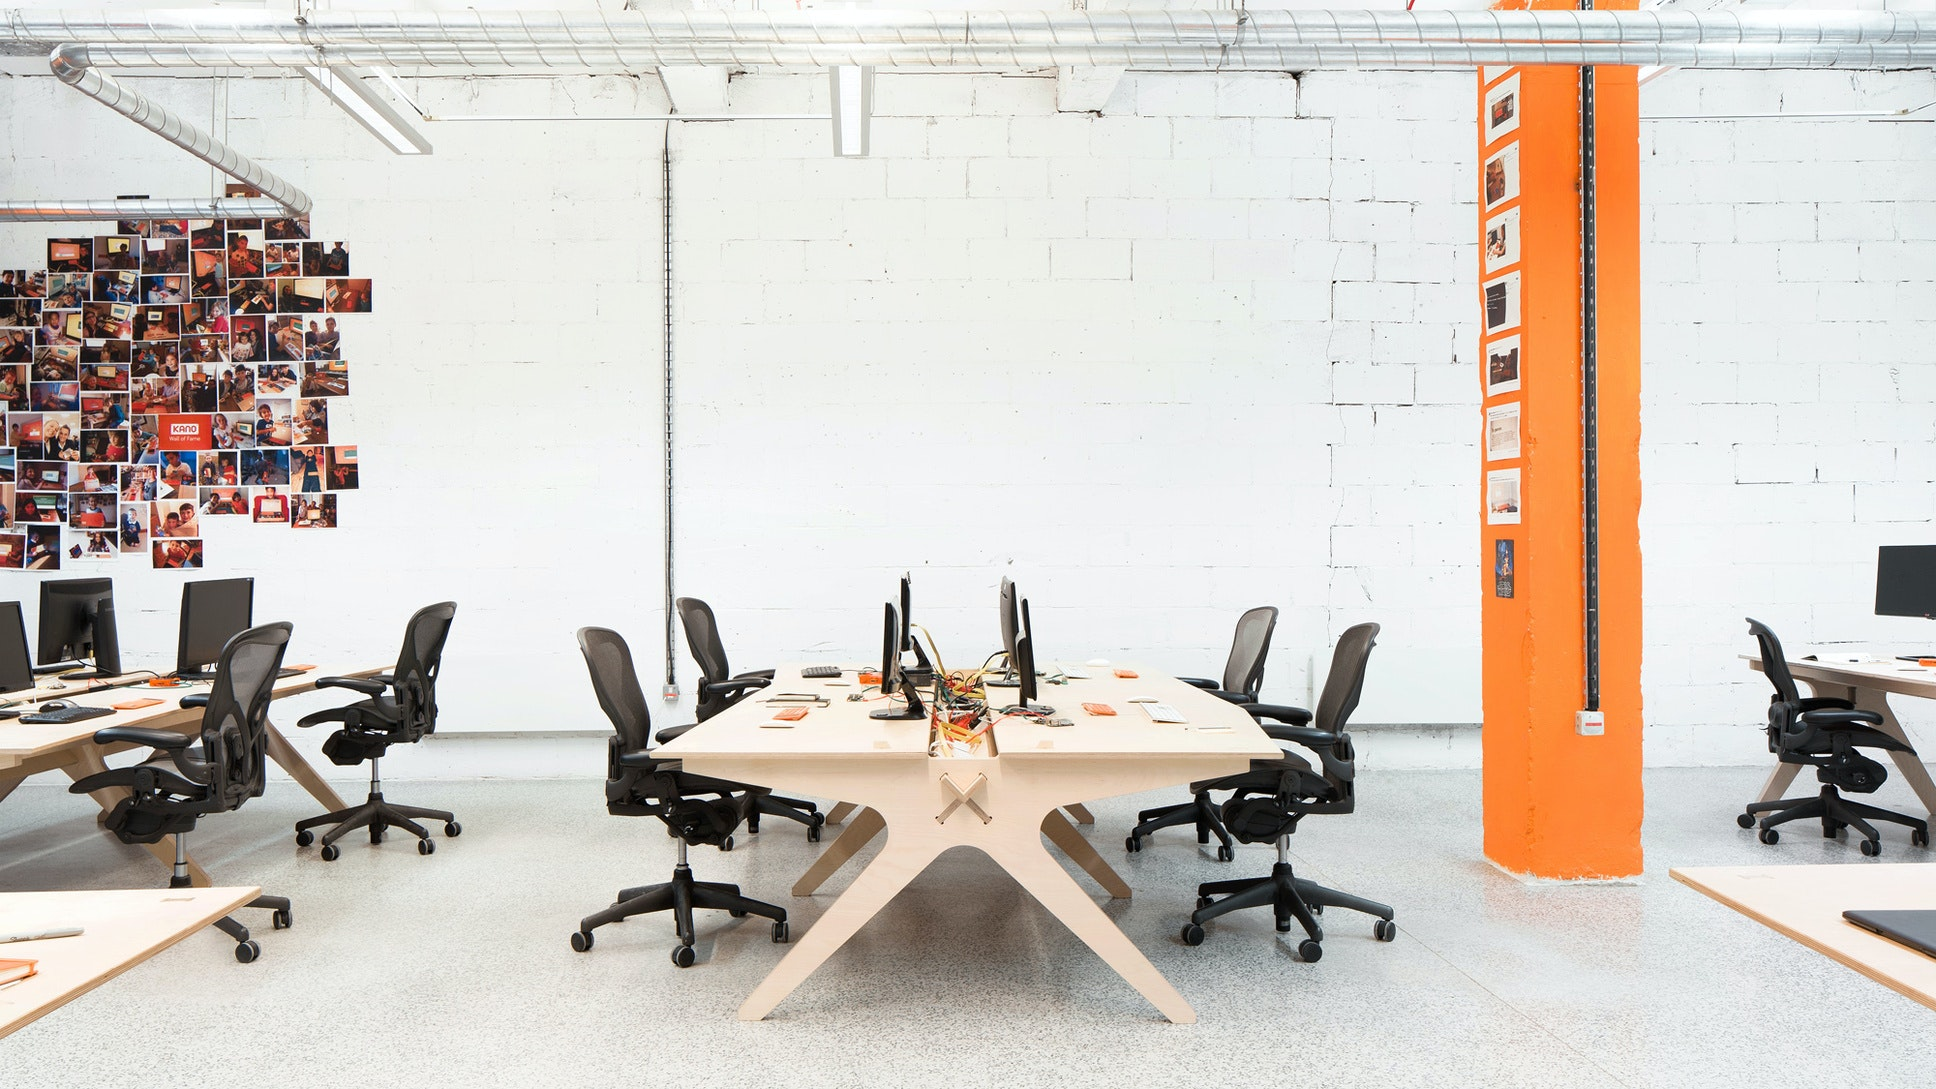 opendesk cracking the production code for open source furniture rh archinect com